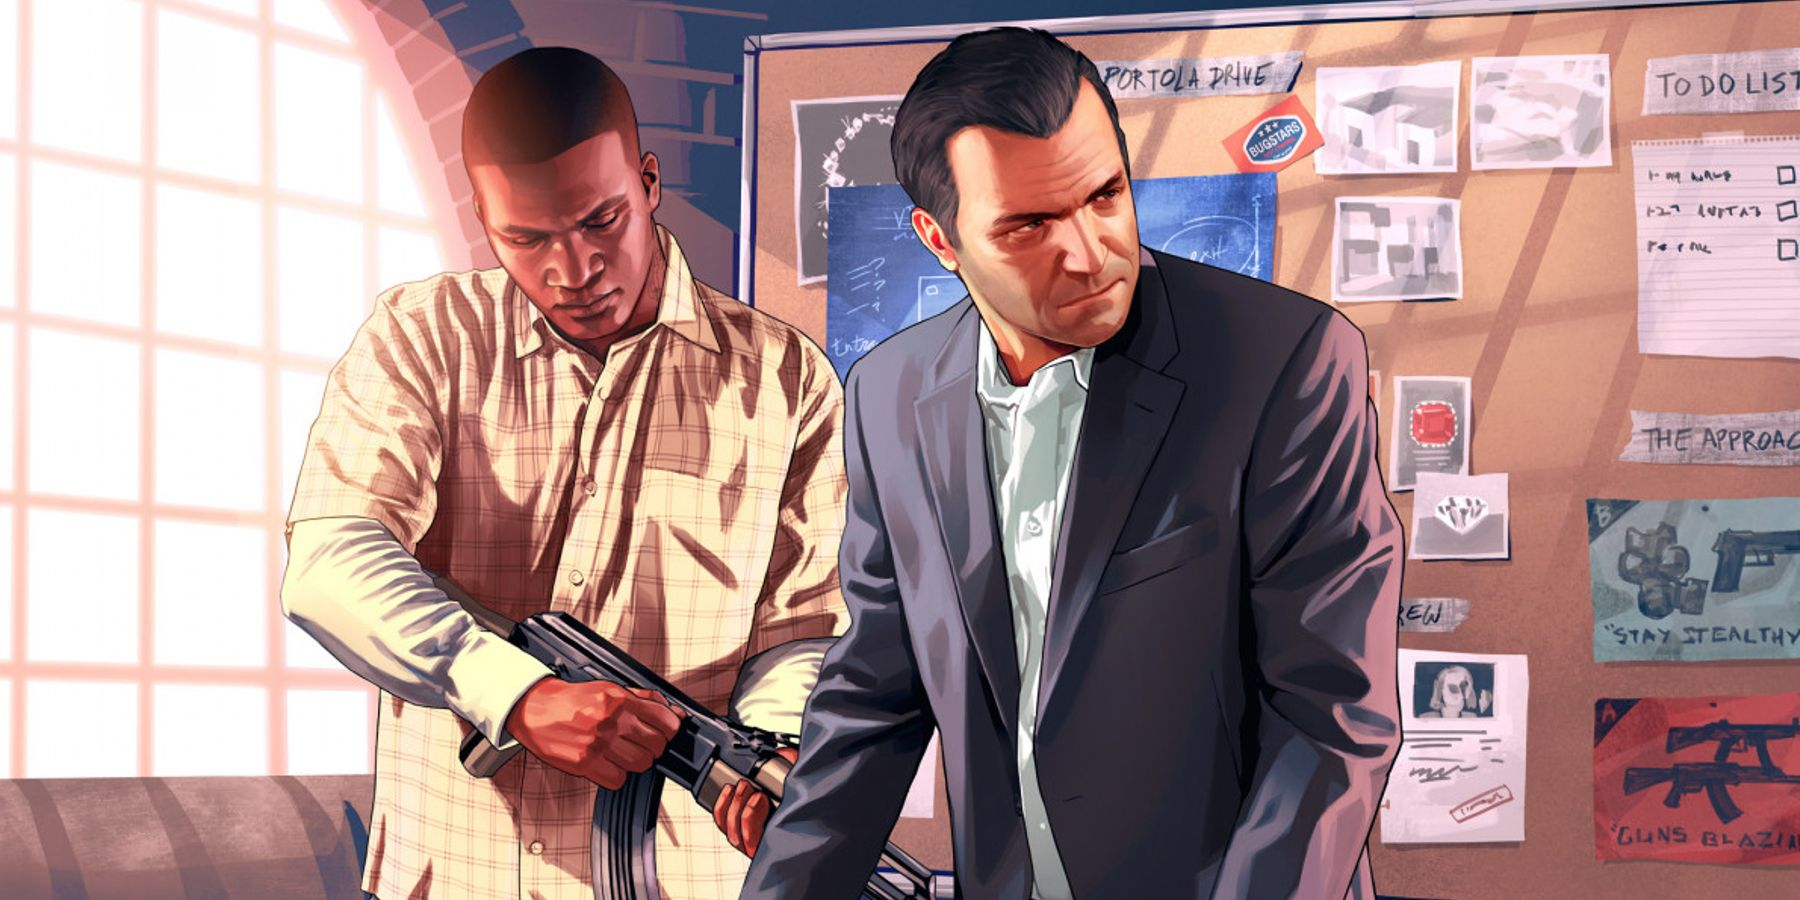 Grand Theft Auto 5 PS5 Trailer Seemingly 'Censors' Content Found in Original